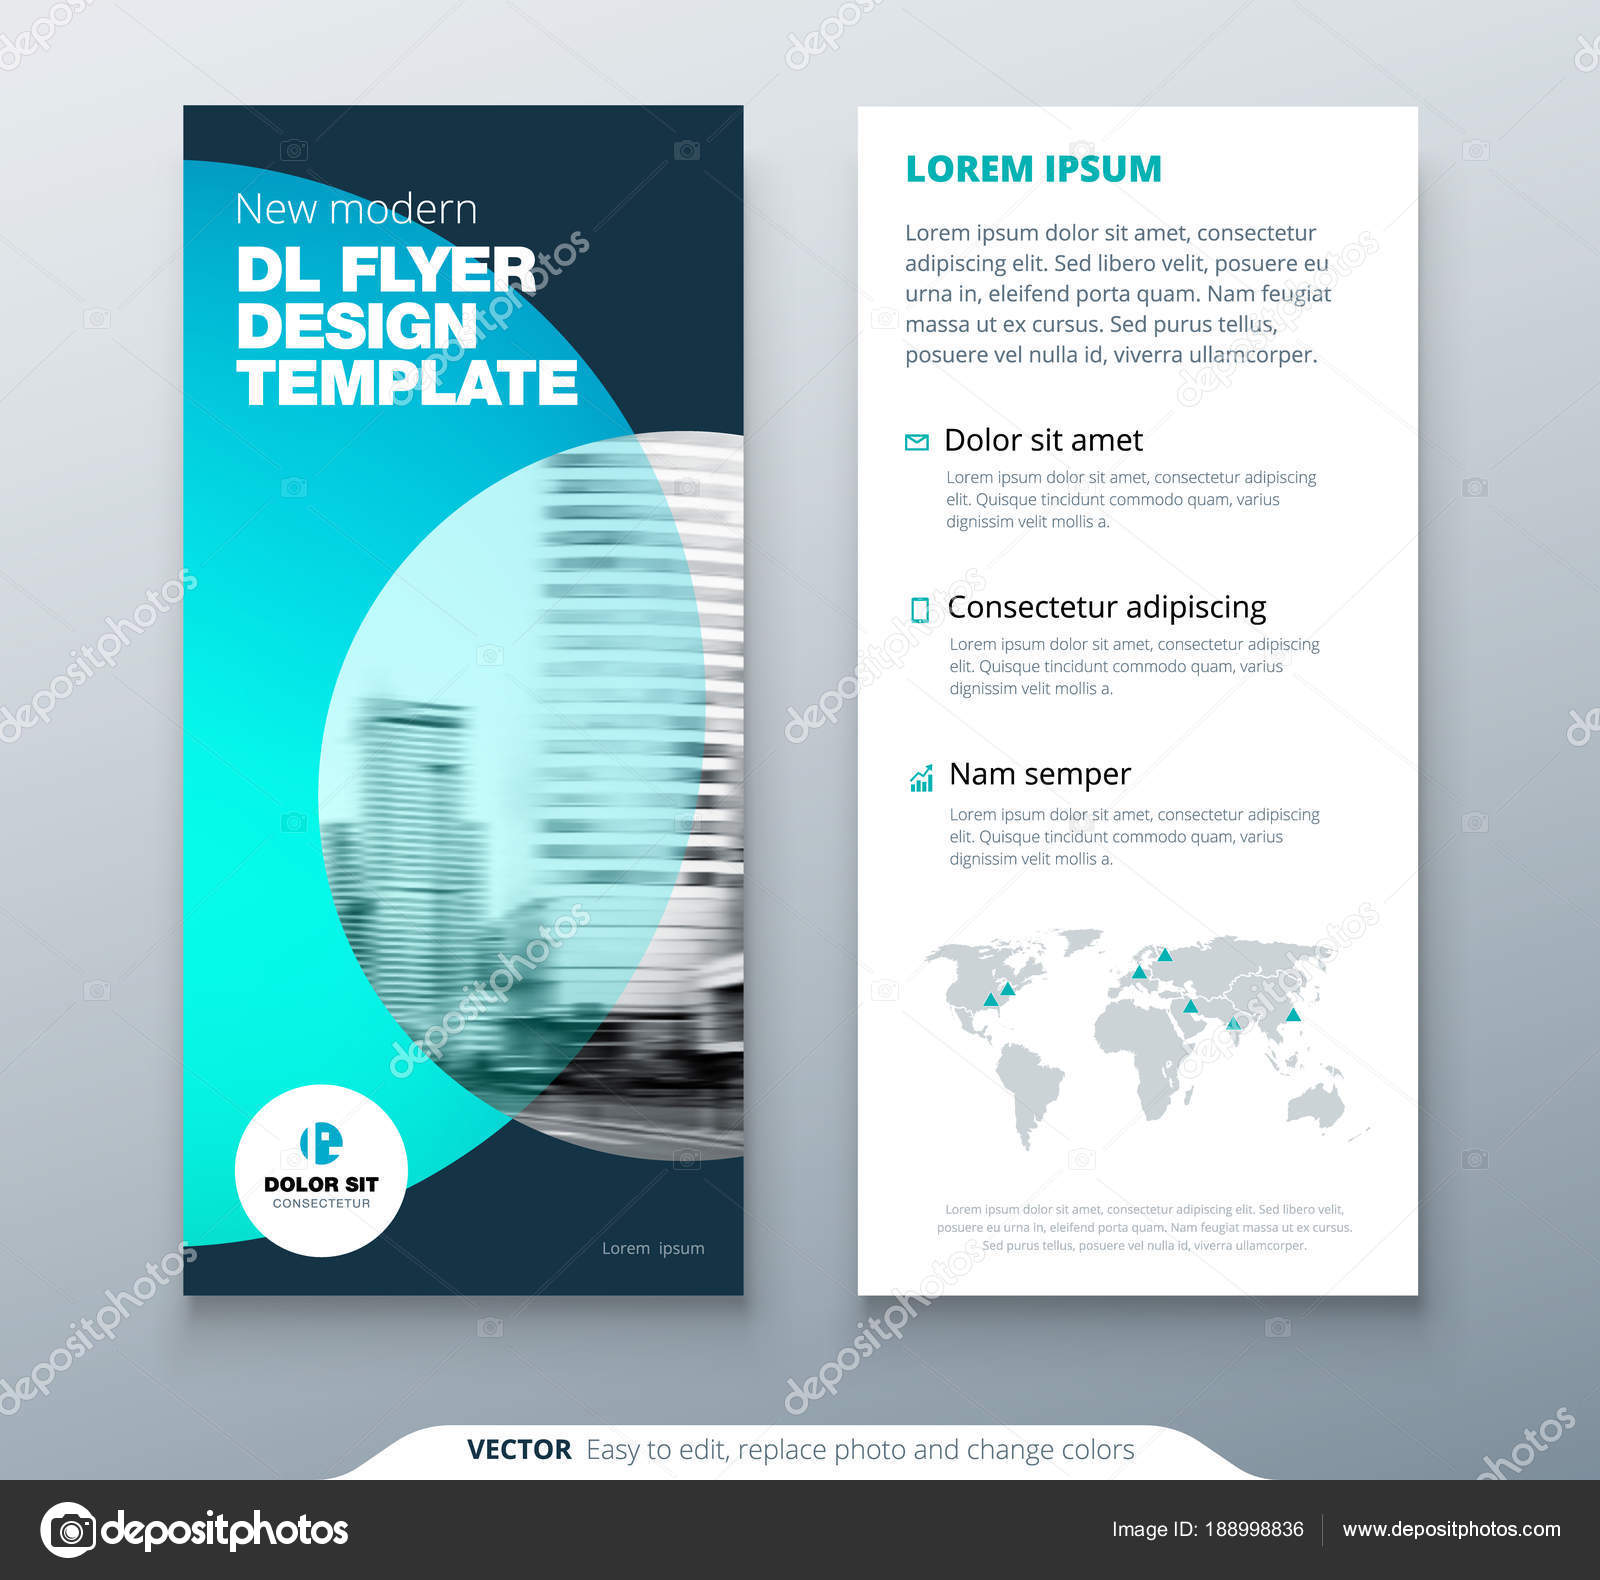 dl flyer design teal business template for dl flyer layout with